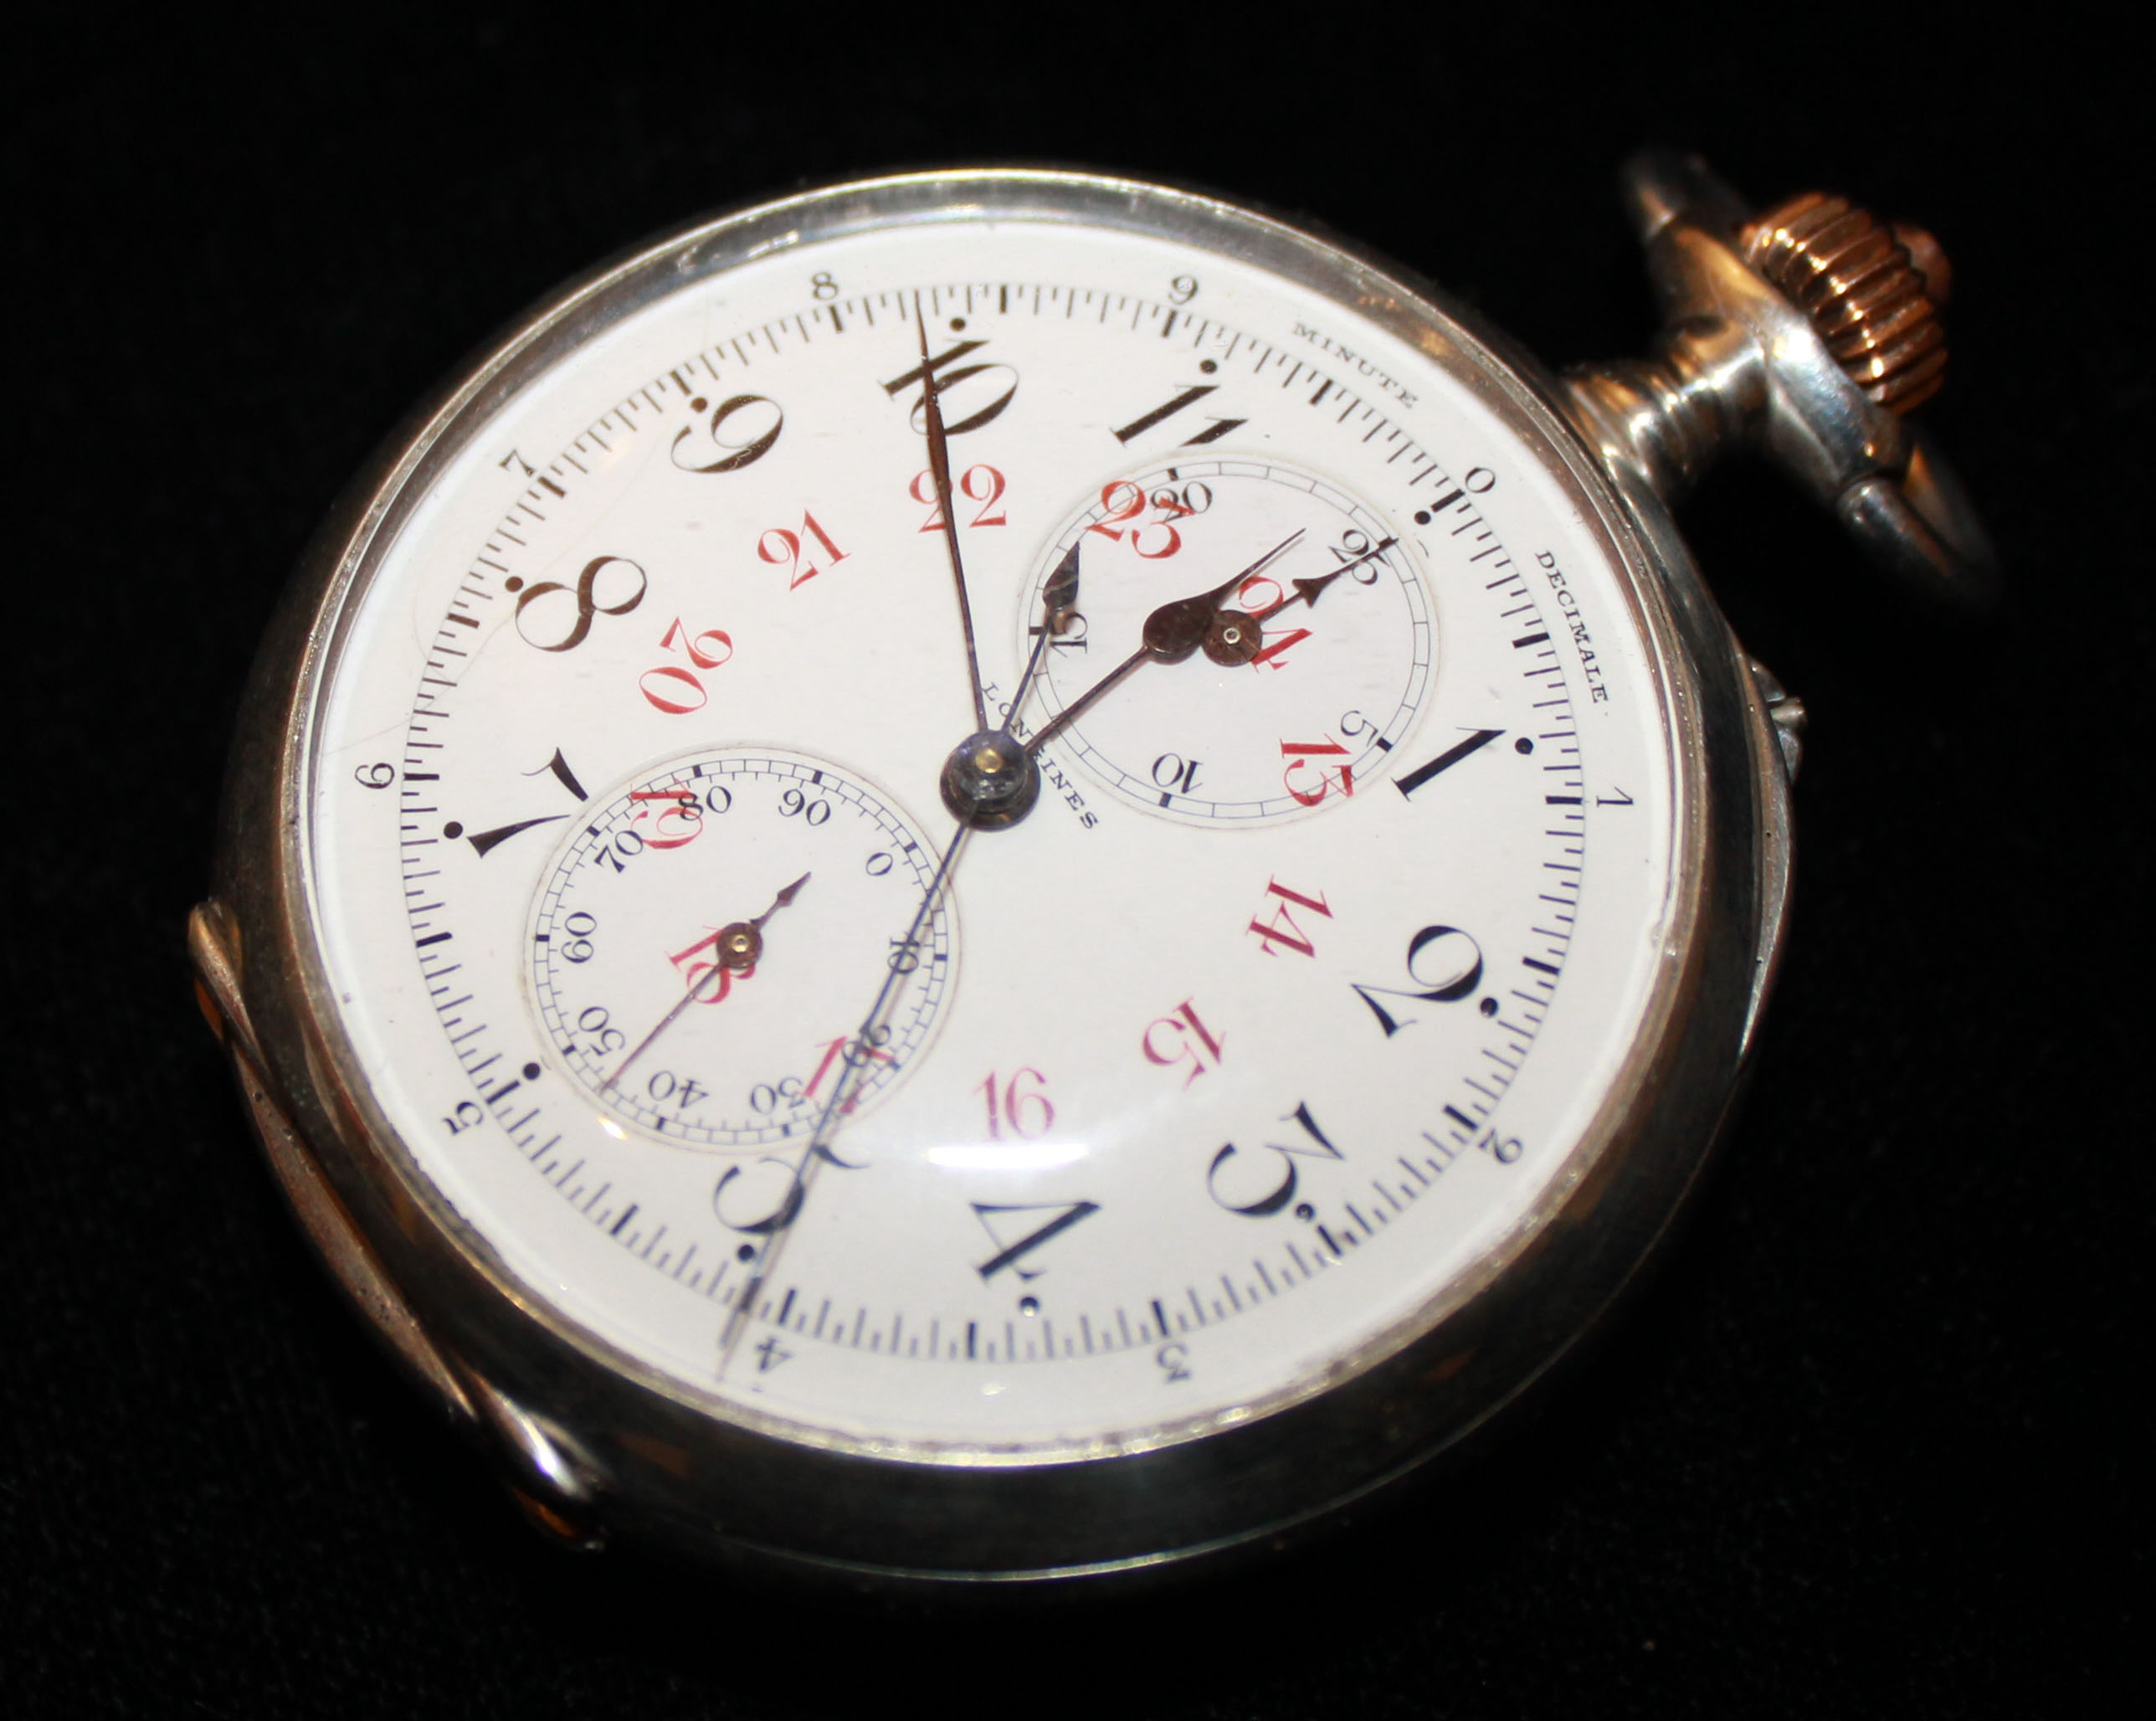 Lot 2 - LONGINES, A RARE EARLY 20TH CENTURY WHITE METAL DUAL DIAL DECIMAL CHRONOGRAPH GENT'S POCKET WATCH